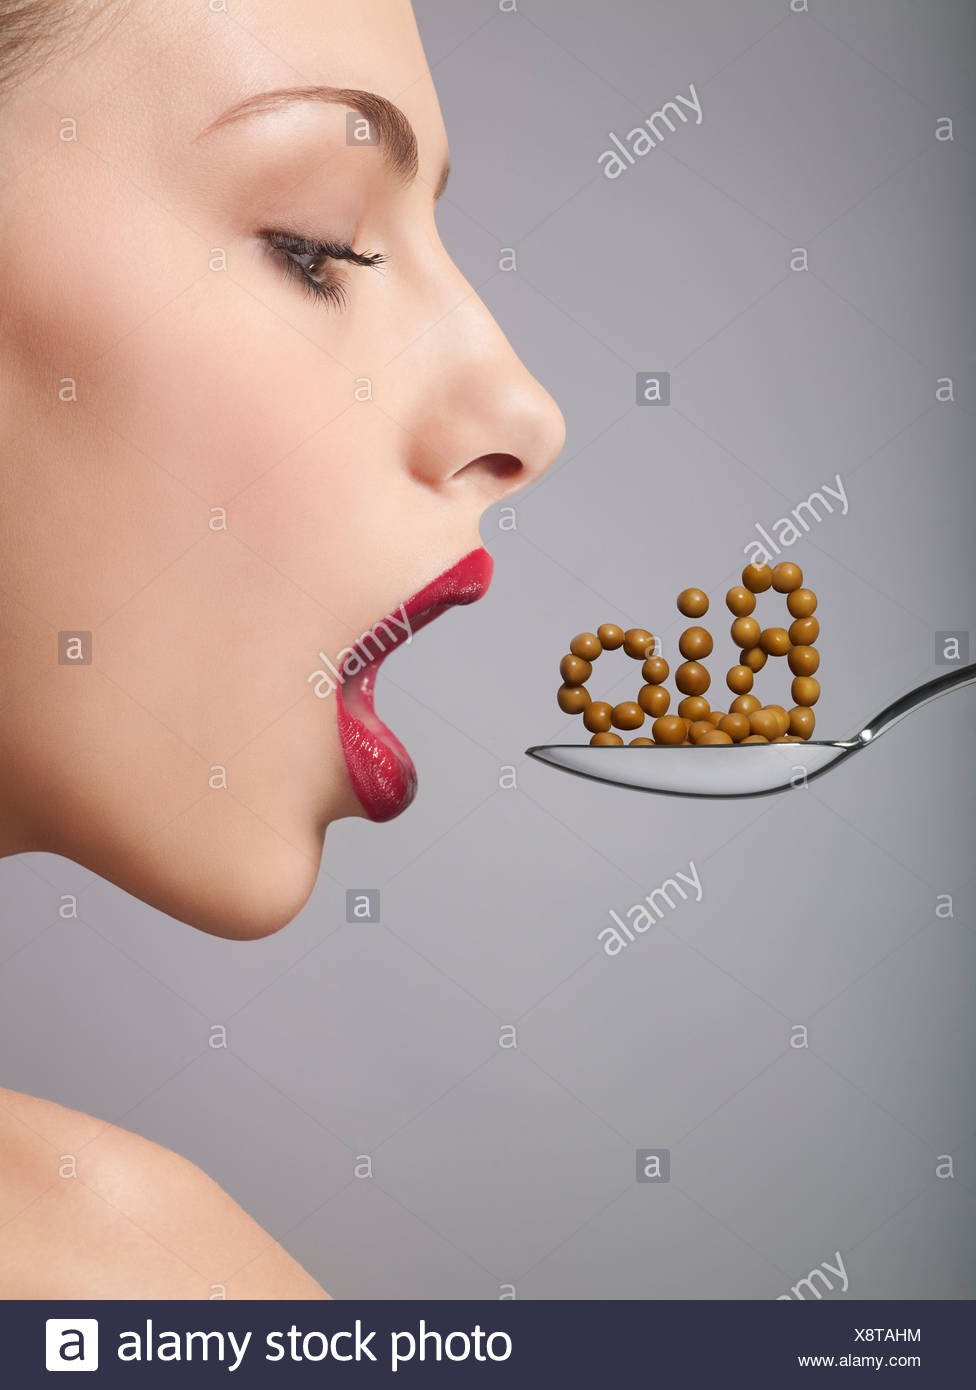 A woman eating bio cereal from a spoon, side view - Stock Image